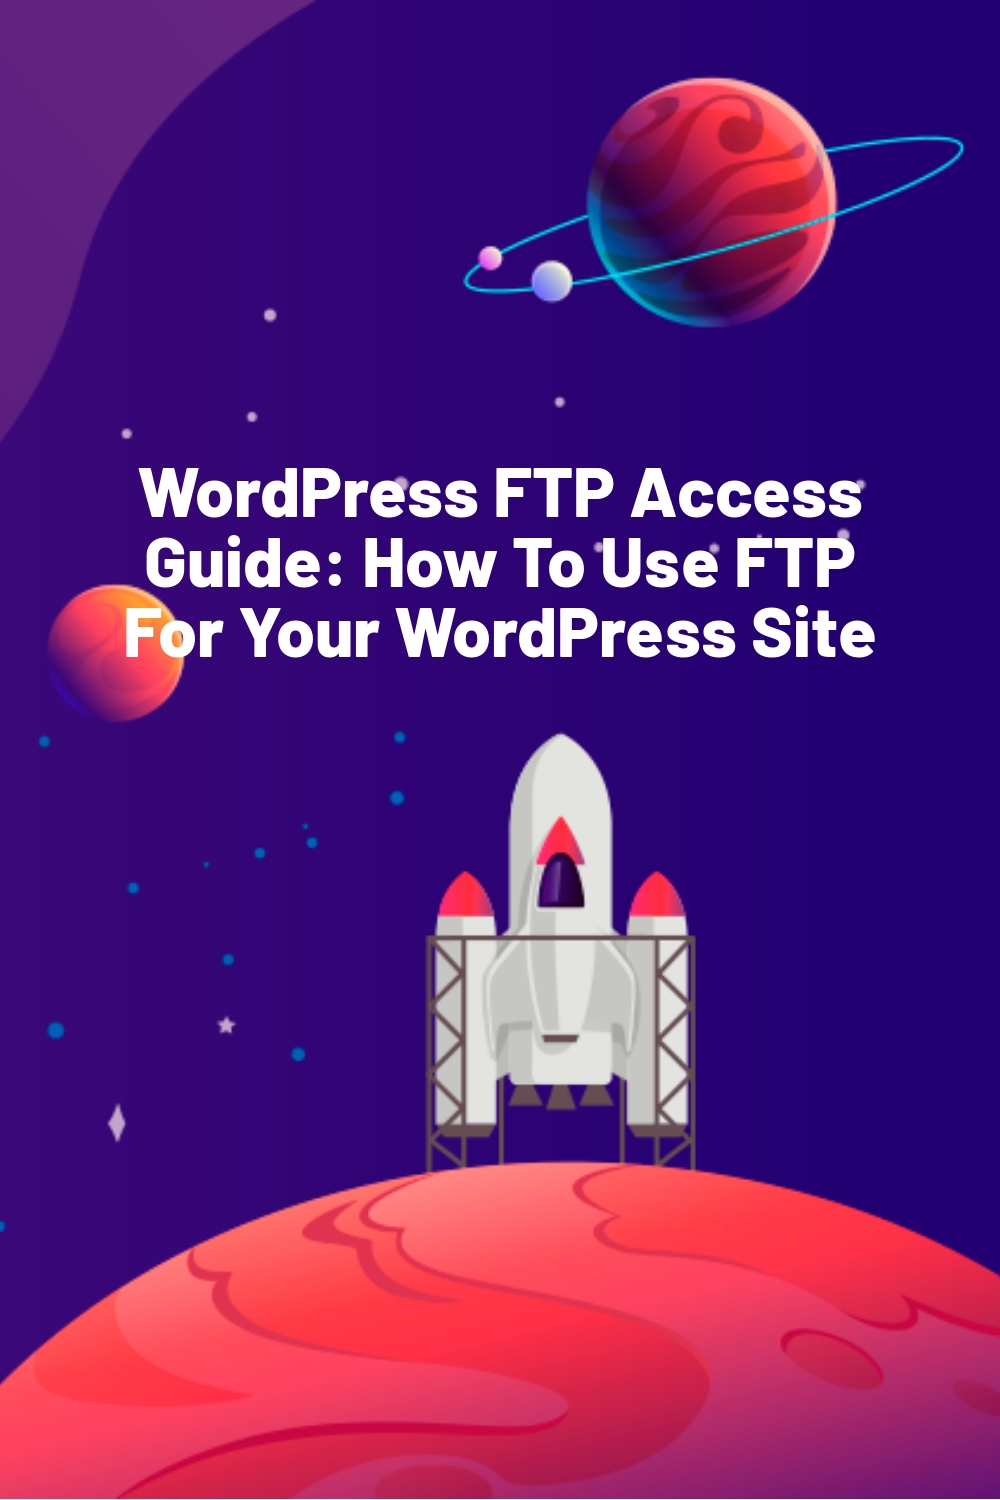 WordPress FTP Access Guide: How To Use FTP For Your WordPress Site